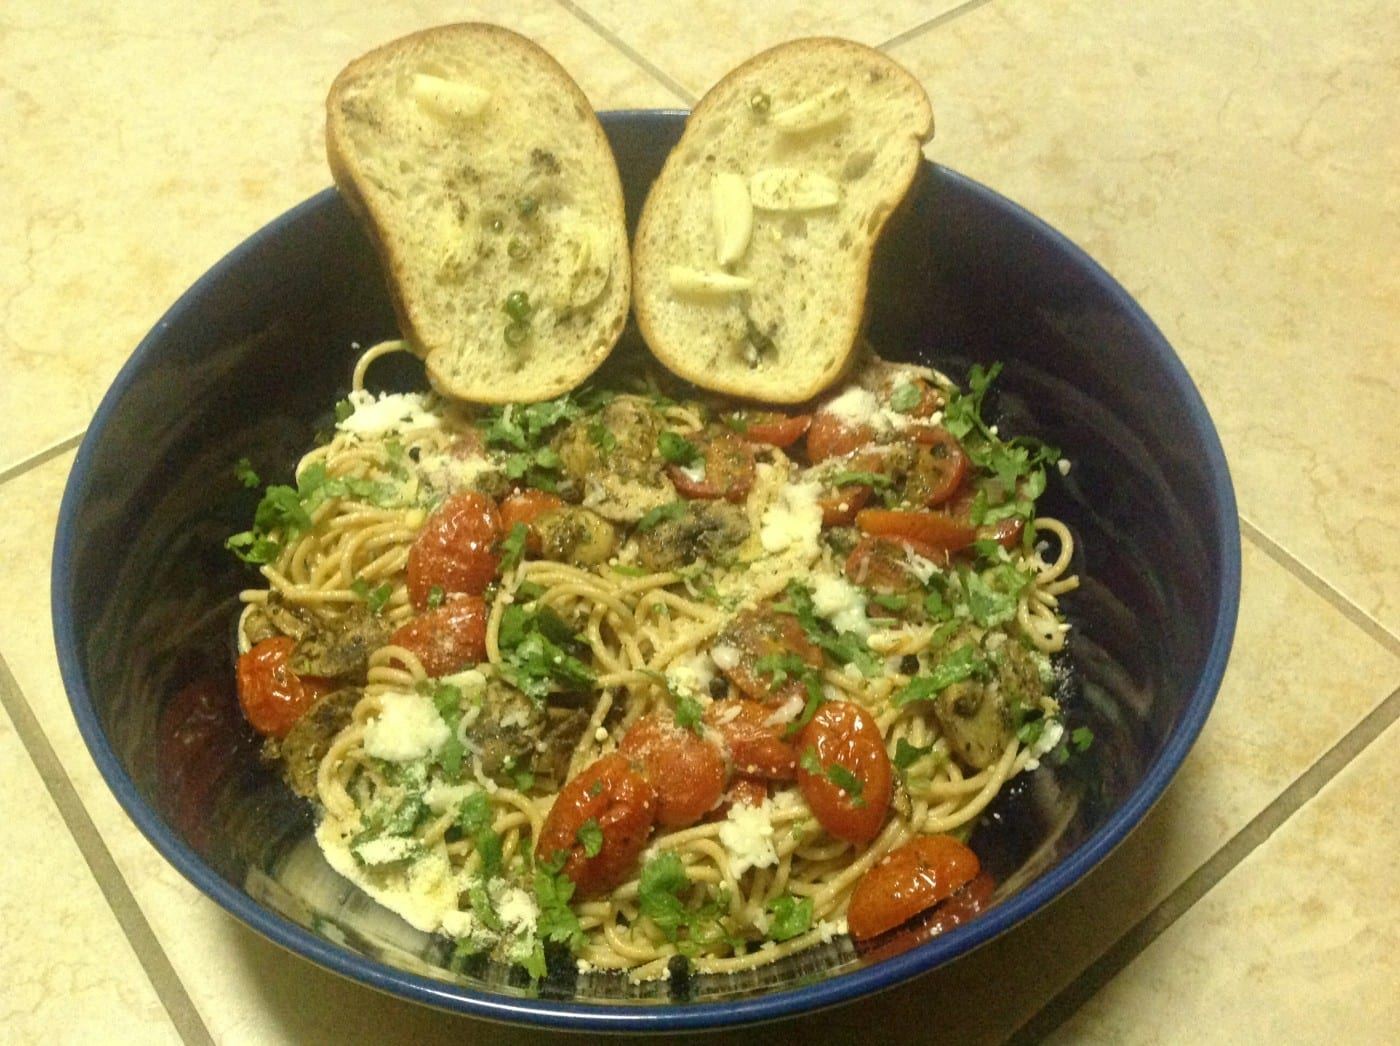 Overhead view of a blue bowl with spaghetti, roasted tomatoes and garlic toast on the side